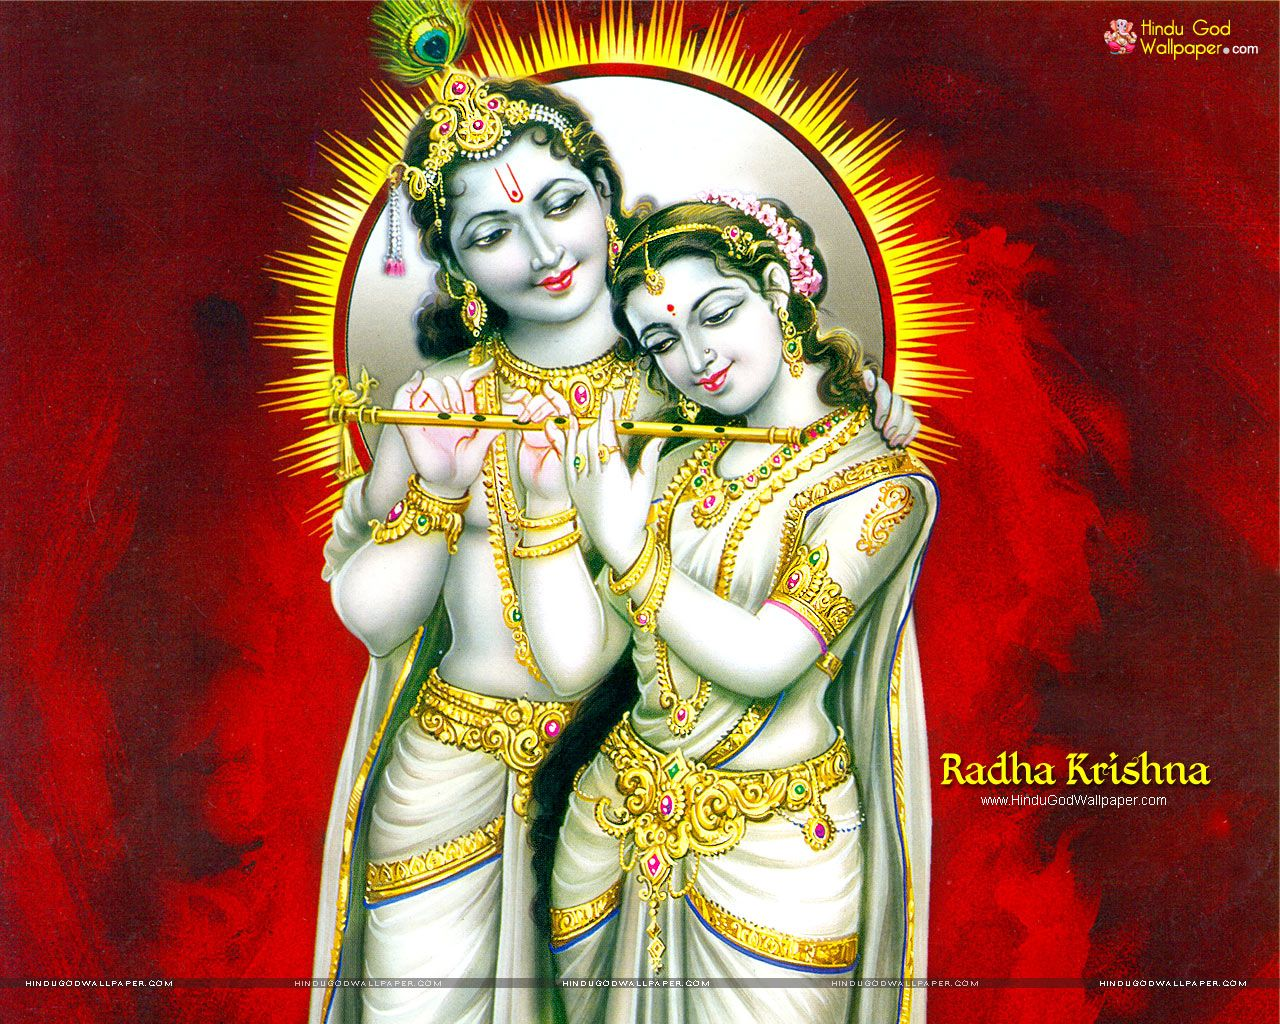 Radha Krishna Hd Wallpapers Full Size Download Krishna Photos Krishna Pictures Radha Krishna Images